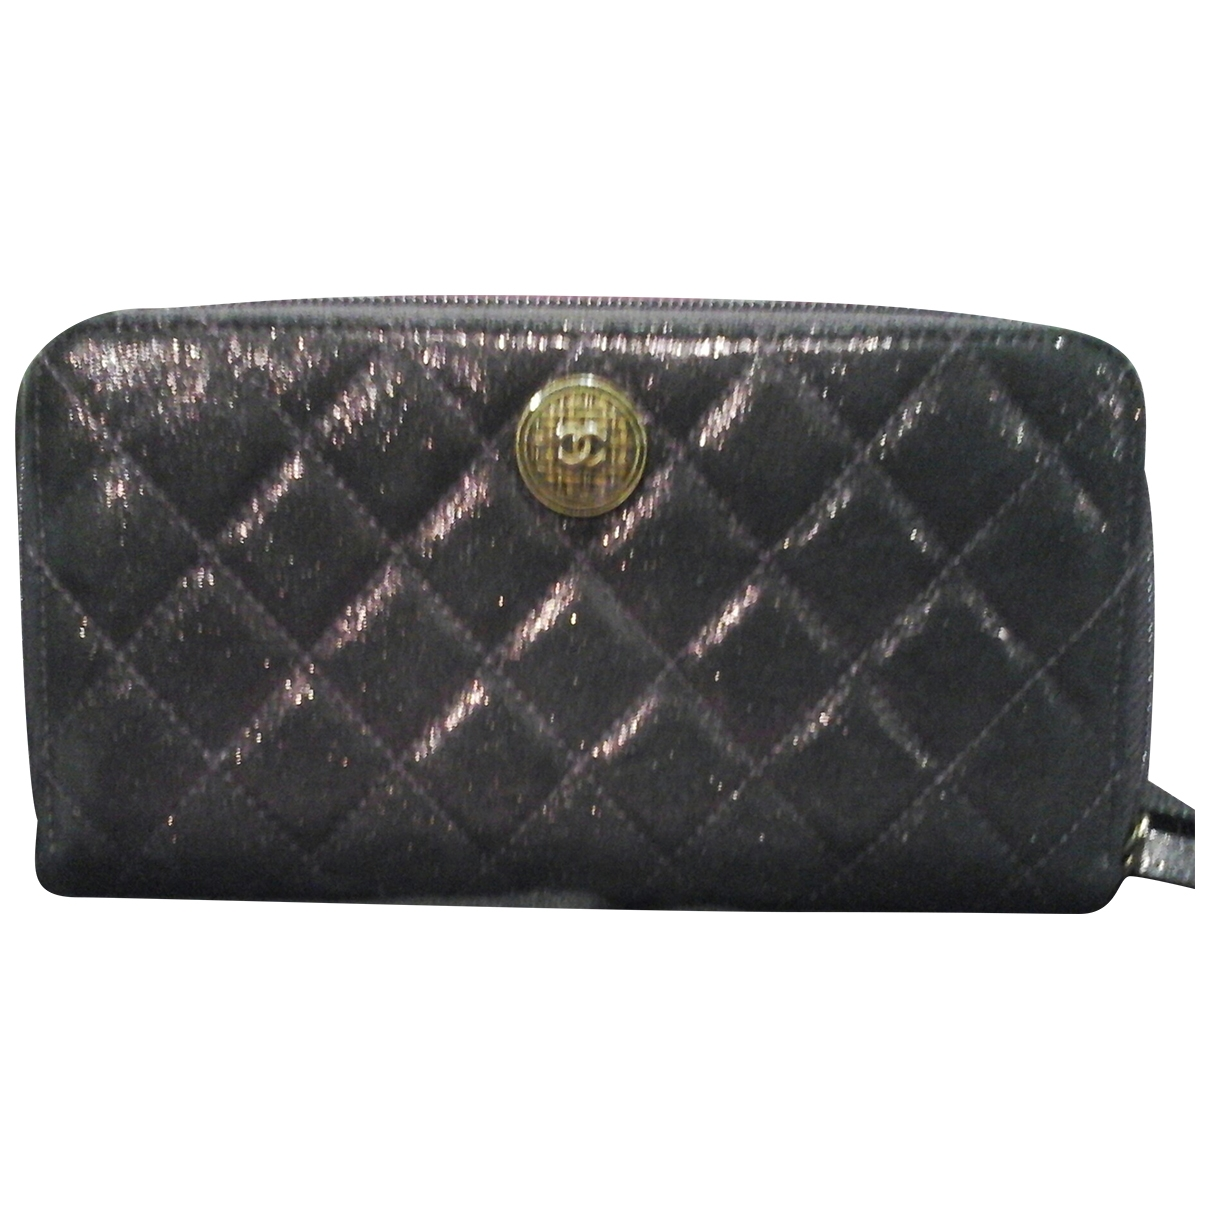 Cartera de Lona Chanel